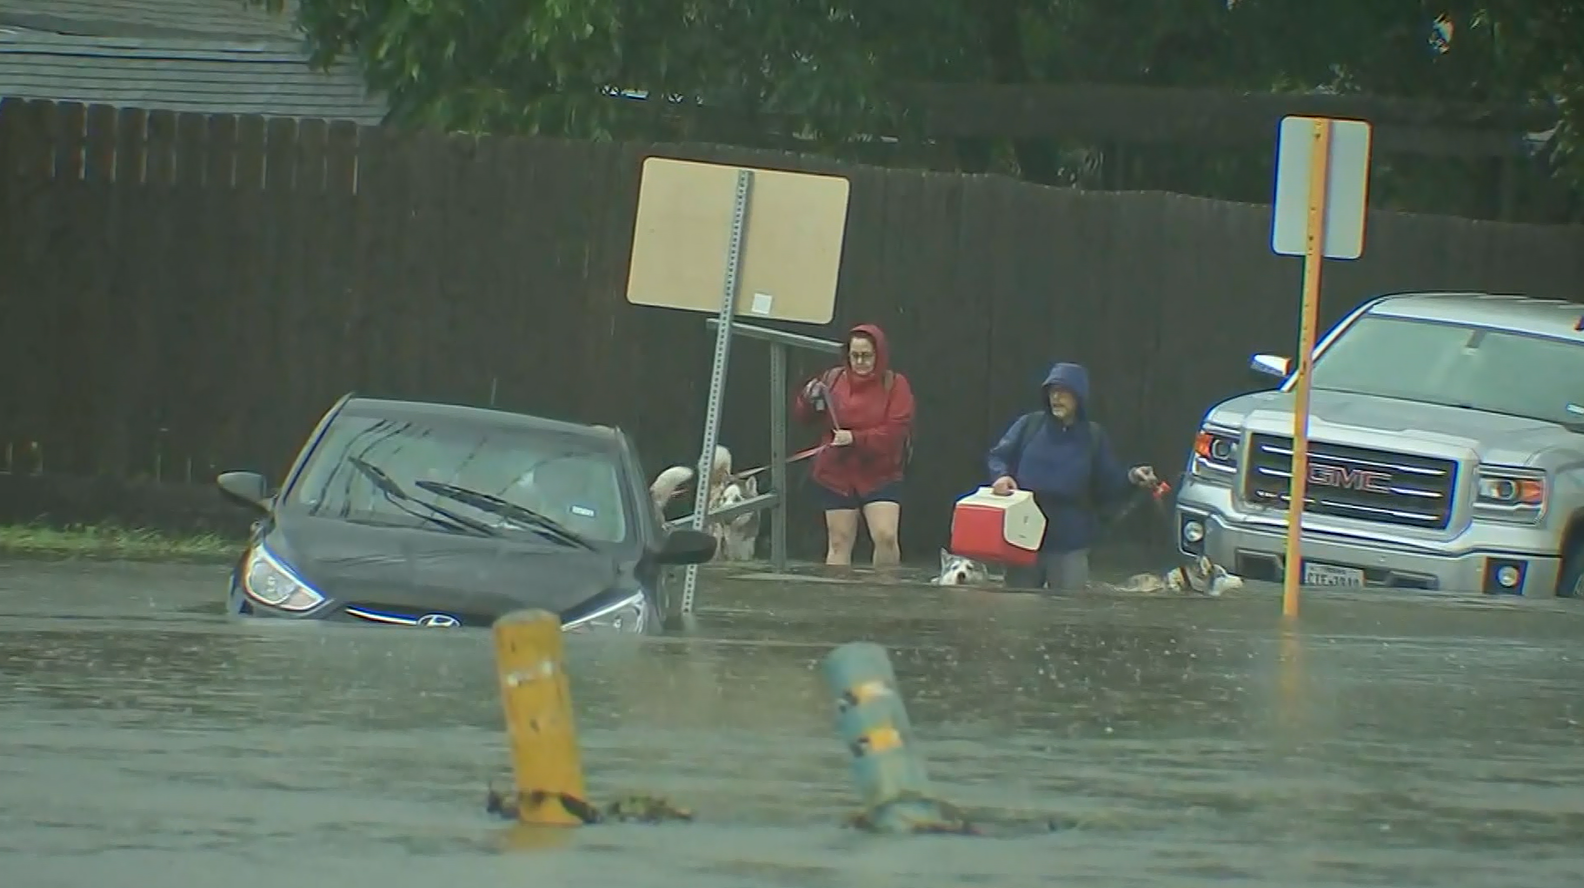 Flooding rescues in Houston  (KTRK/CNN)